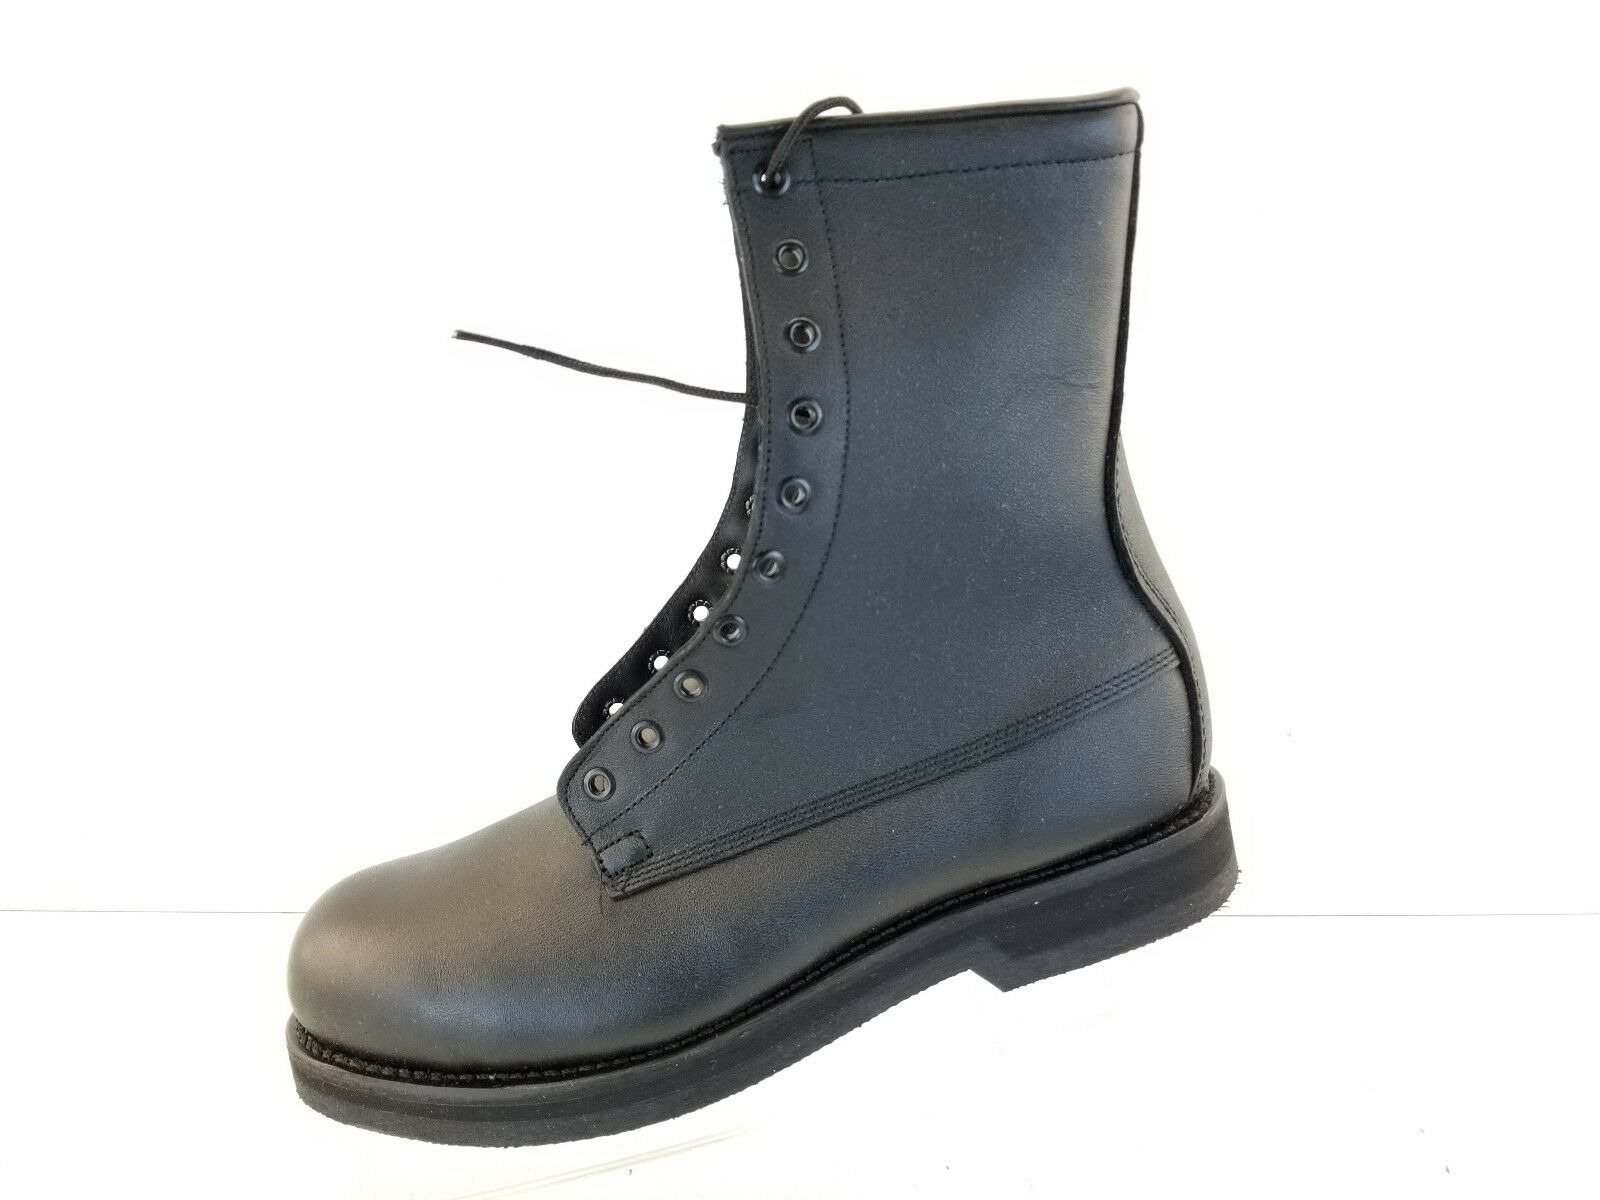 Vtg ADDISON STEEL TOE MILITARY COMBAT Blk LACE ARMY MOTORCYCLE LACE Blk UP BOOTS SZ 10.5R 822e69